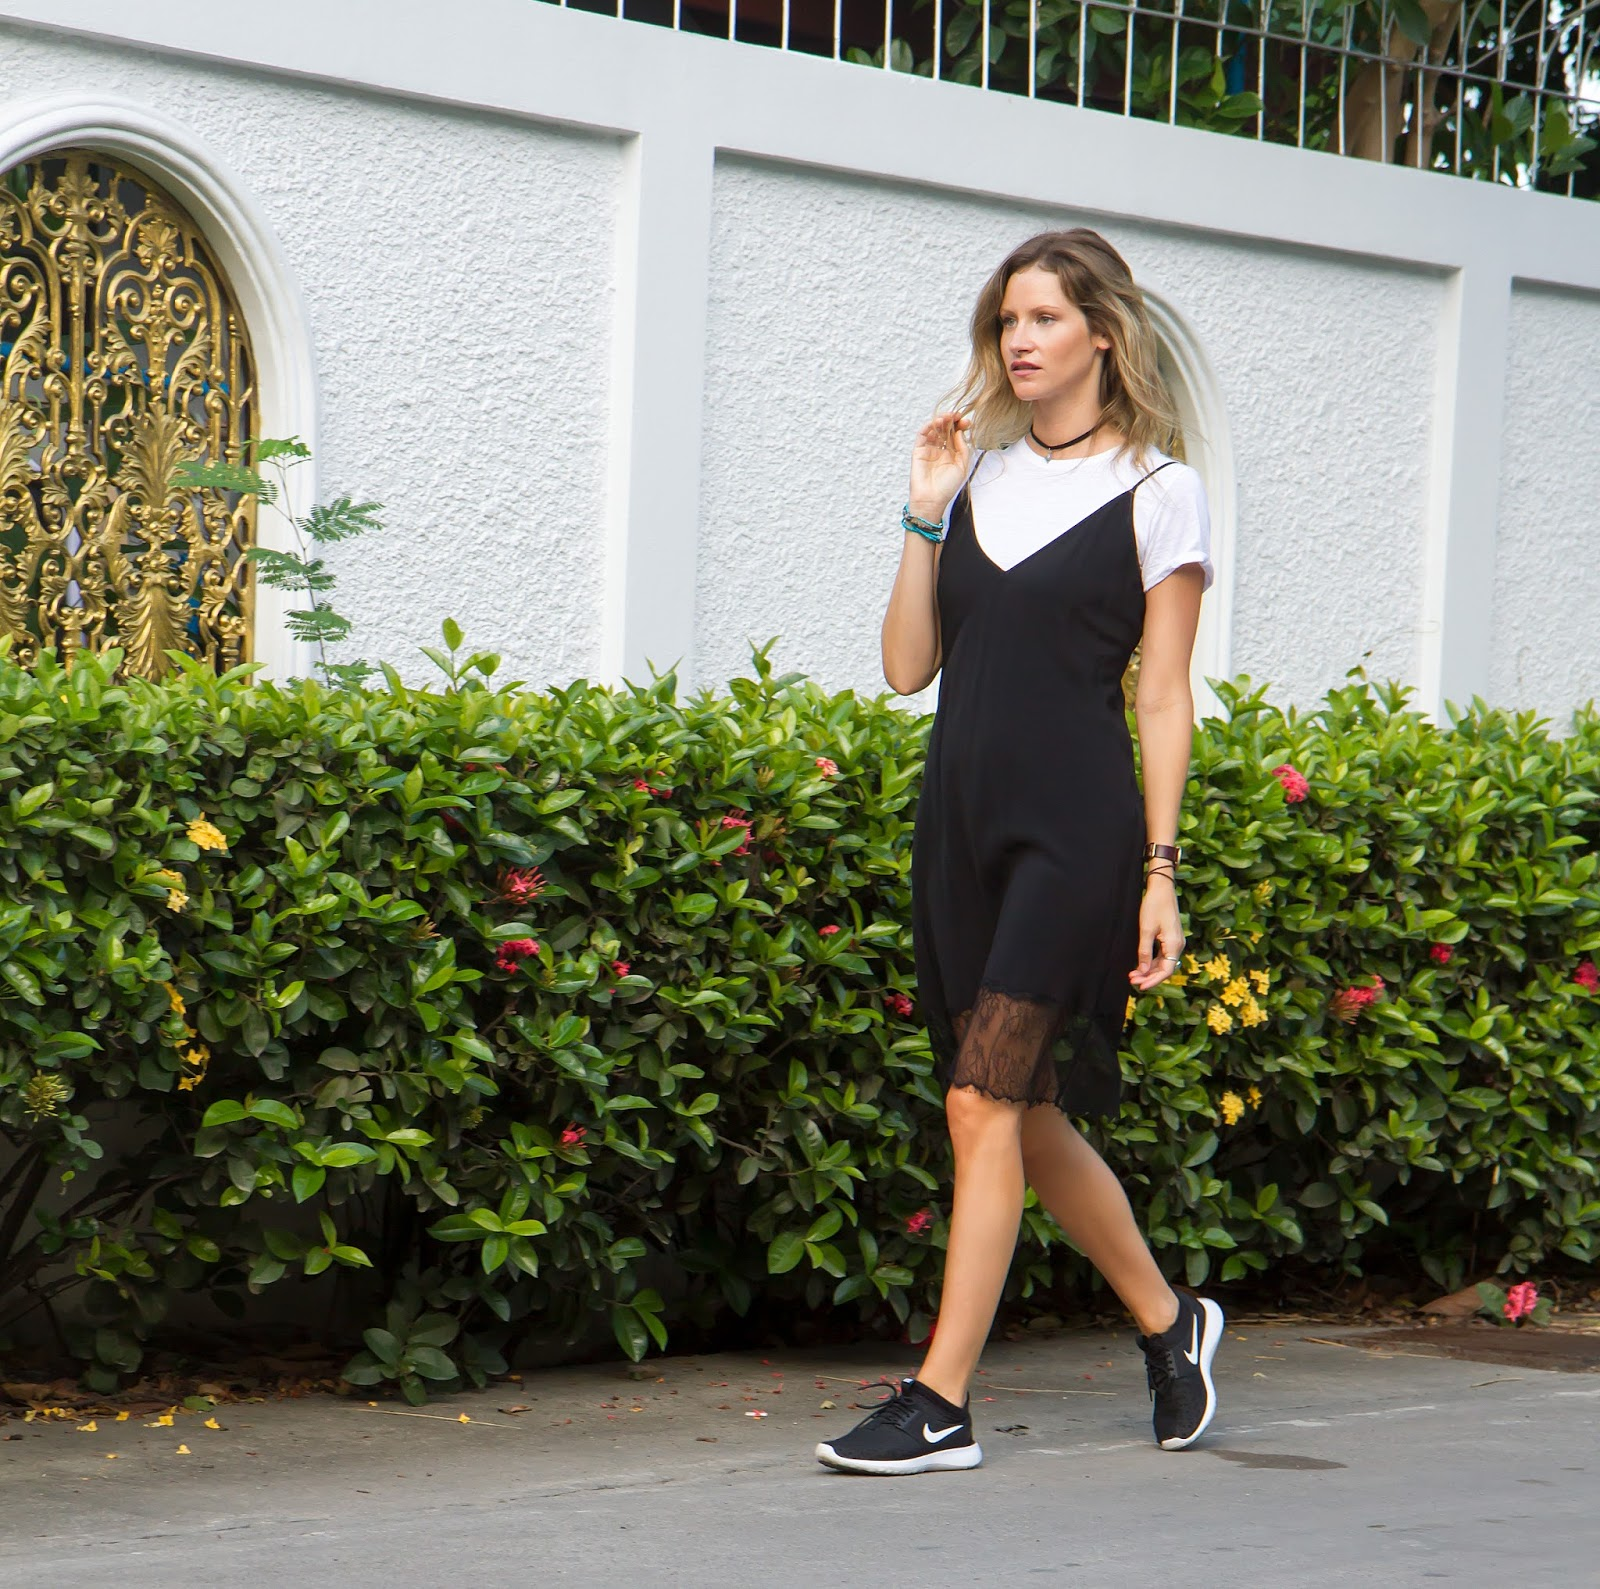 Fashion blogger, Alison Hutchinson, is wearing a white t-shirt under a black slip dress.